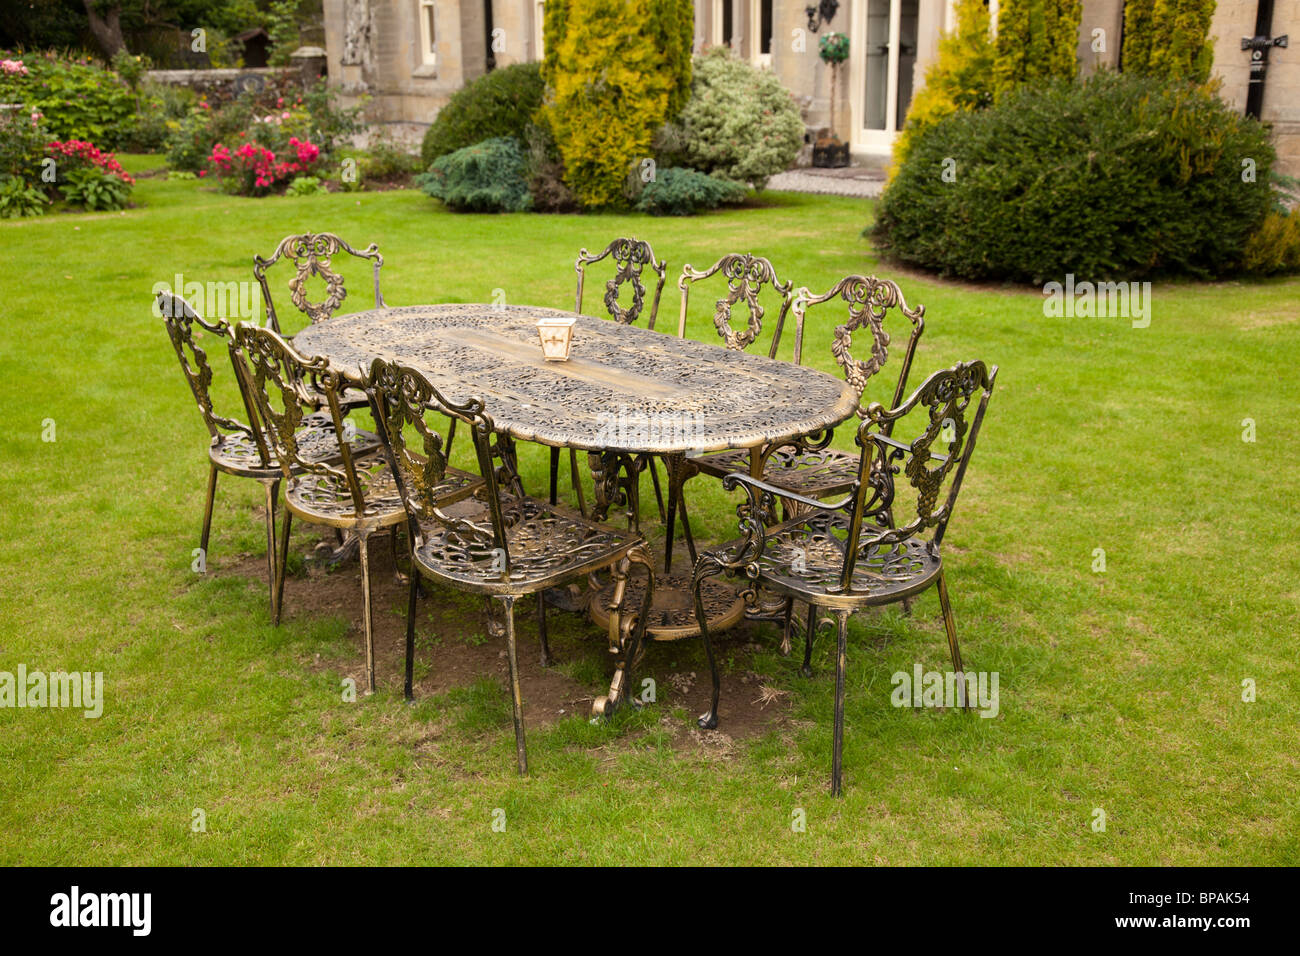 Colored cast - Old Fashioned Gold Colored Cast Iron Table And Eight Chairs On Formal Lawn